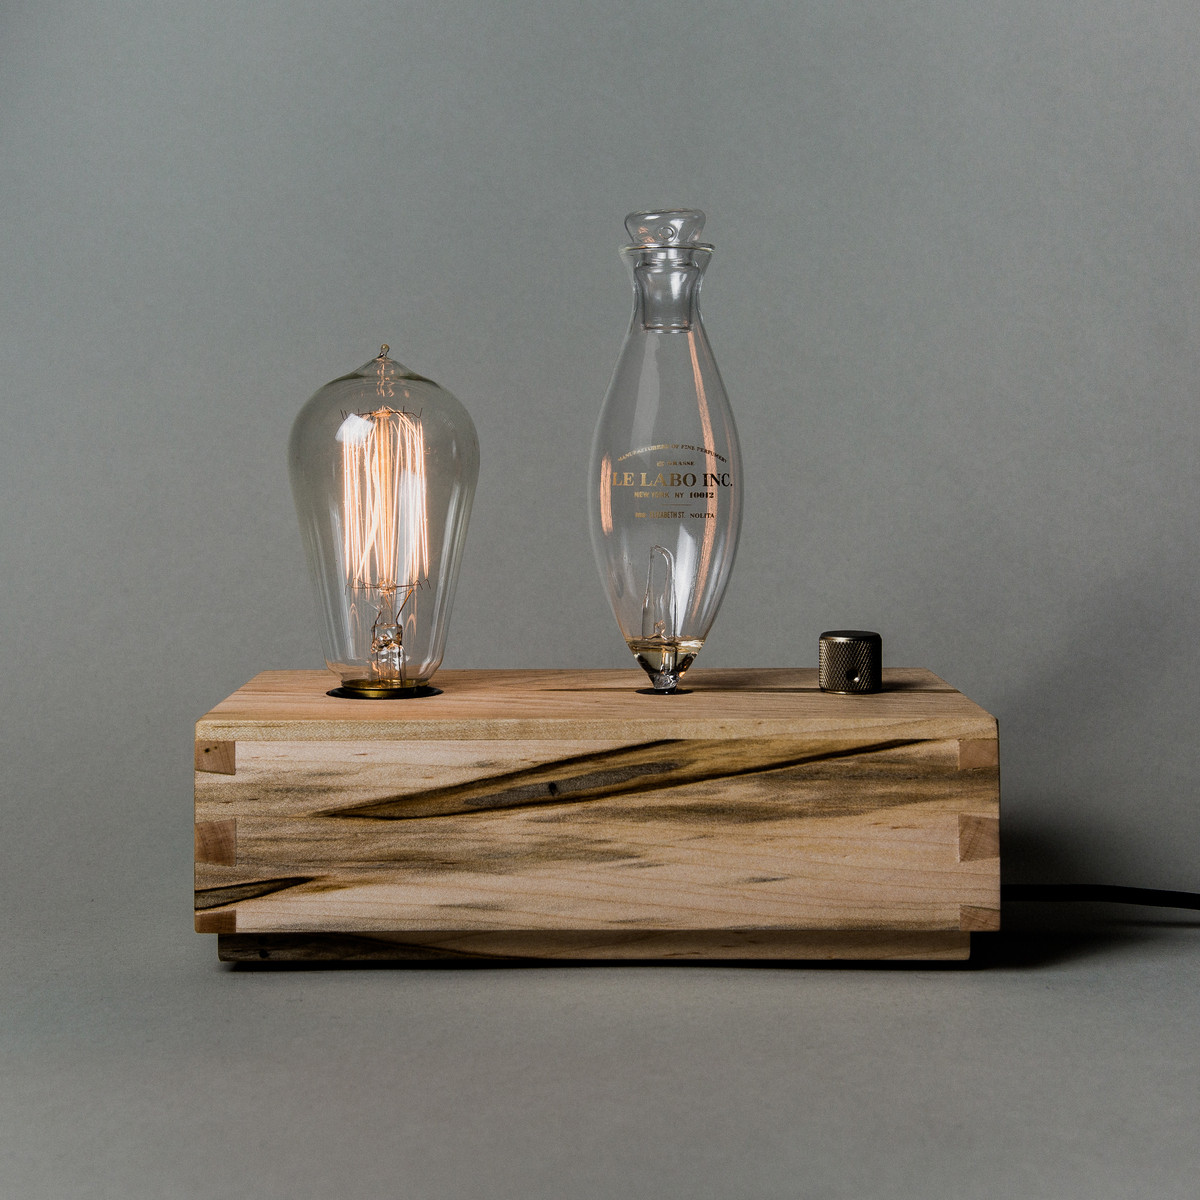 A home diffuser, a table light, and a statement piece all in one. This truly unqiue diffuser is a conversation piece and the secert to a good smelling home all in one!